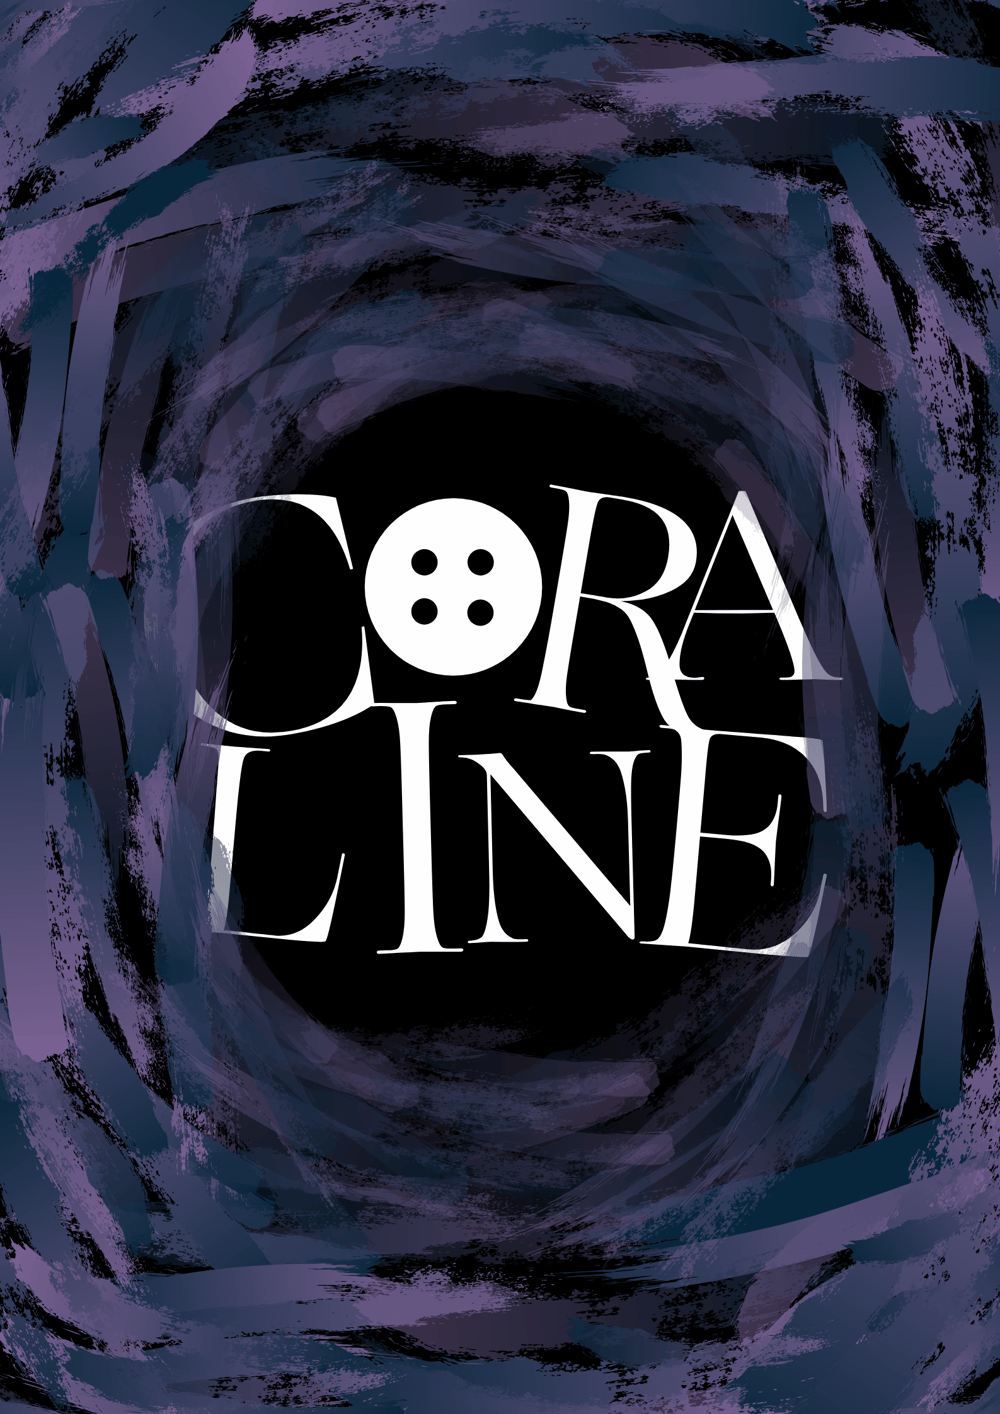 Film Posters - Coraline - image 3 - student project